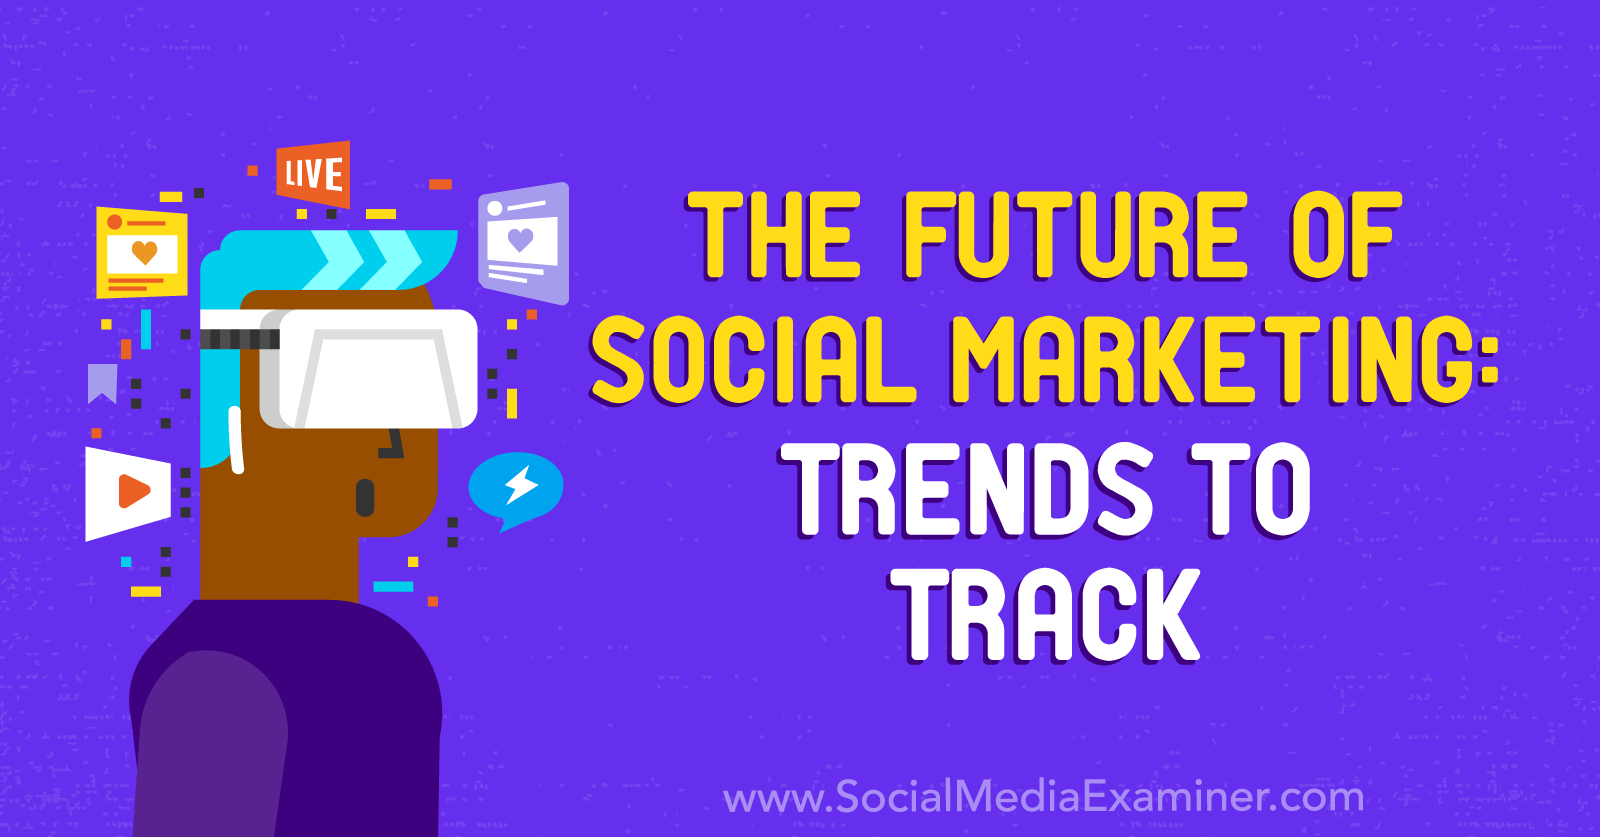 The Future of Social Marketing: Trends to Track featuring insights from Mark Schaefer on the Social Media Marketing Podcast.